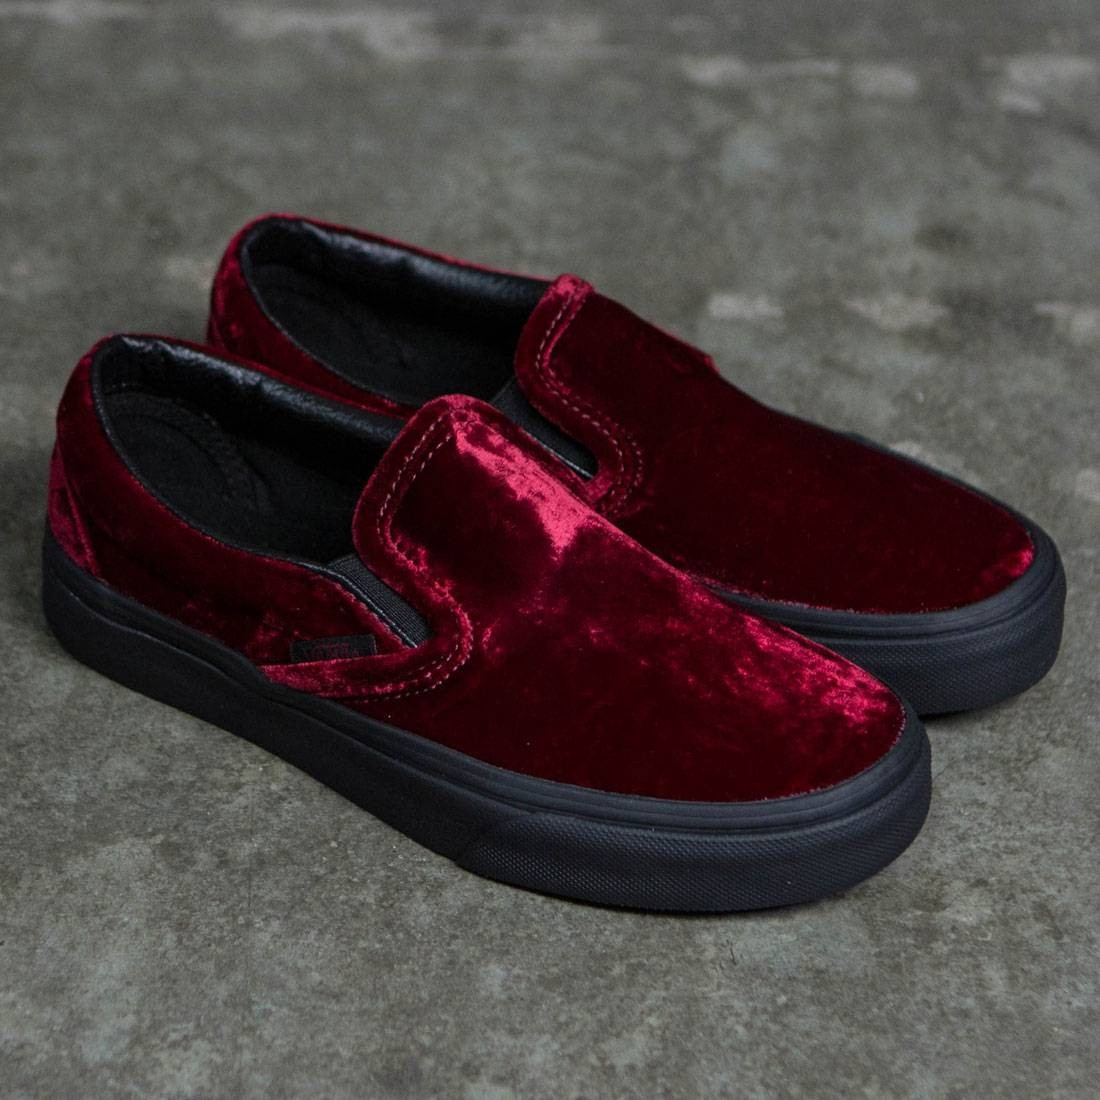 1baeadd5b511be Vans Women Classic Slip-On - Velvet (red   black)